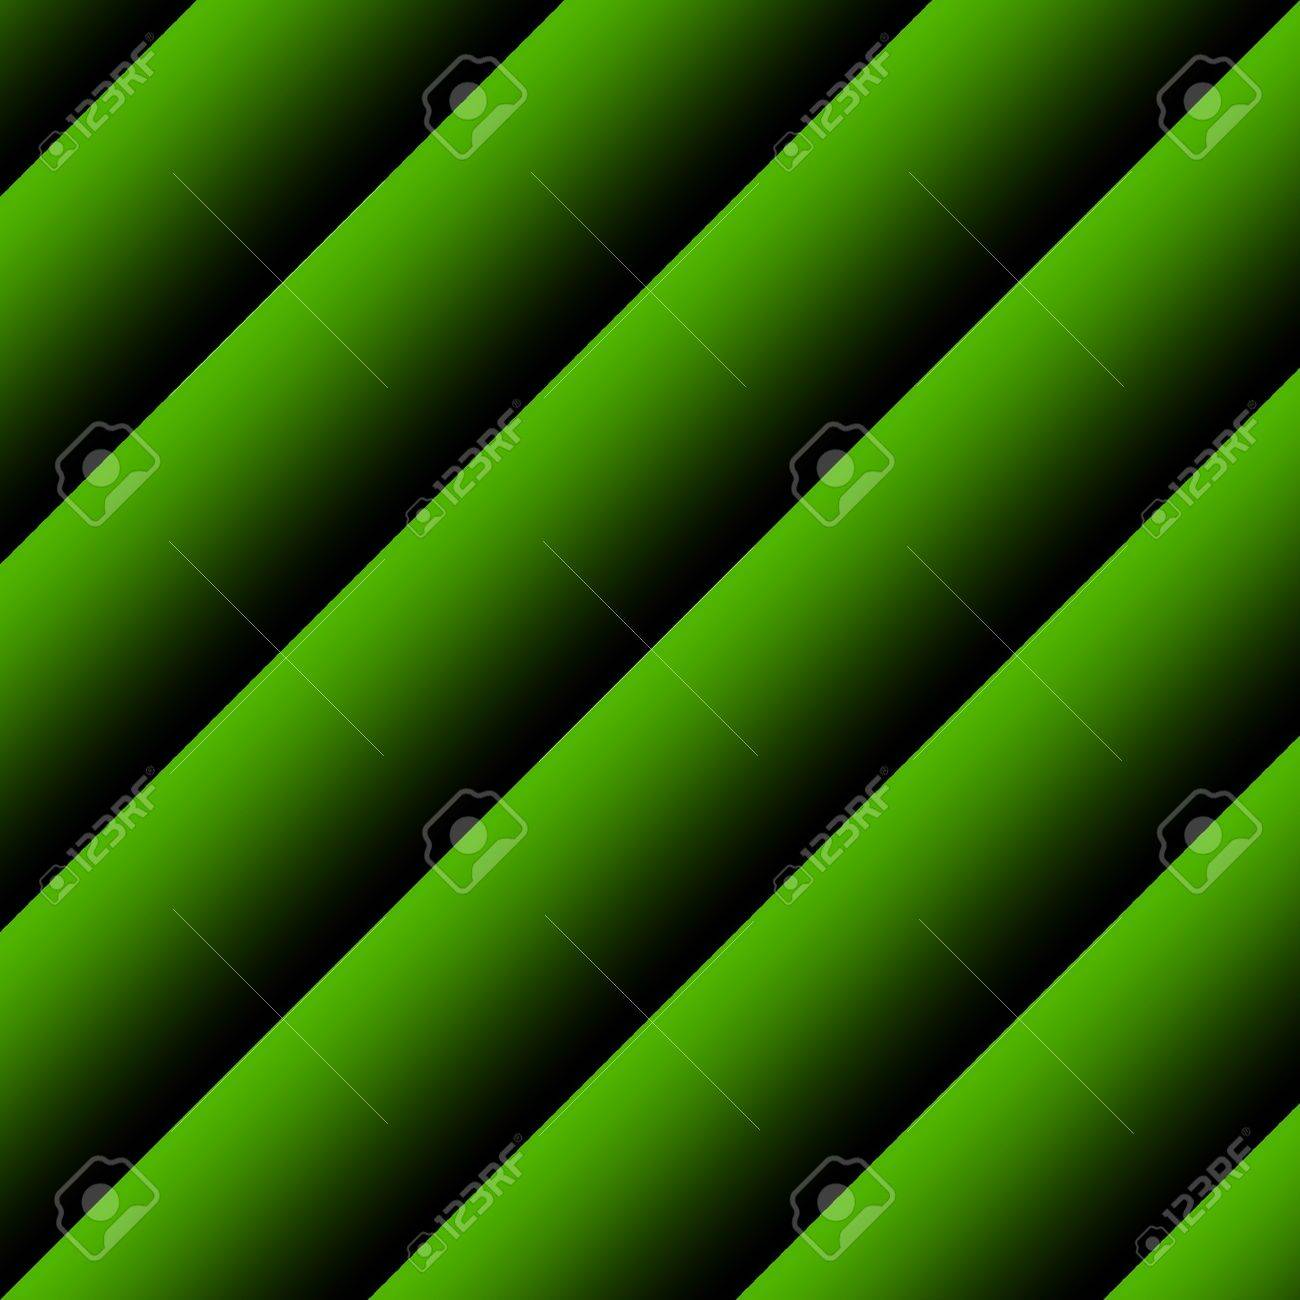 Abstract background image of green diagonal stripes in square frame Stock Photo - 7064617